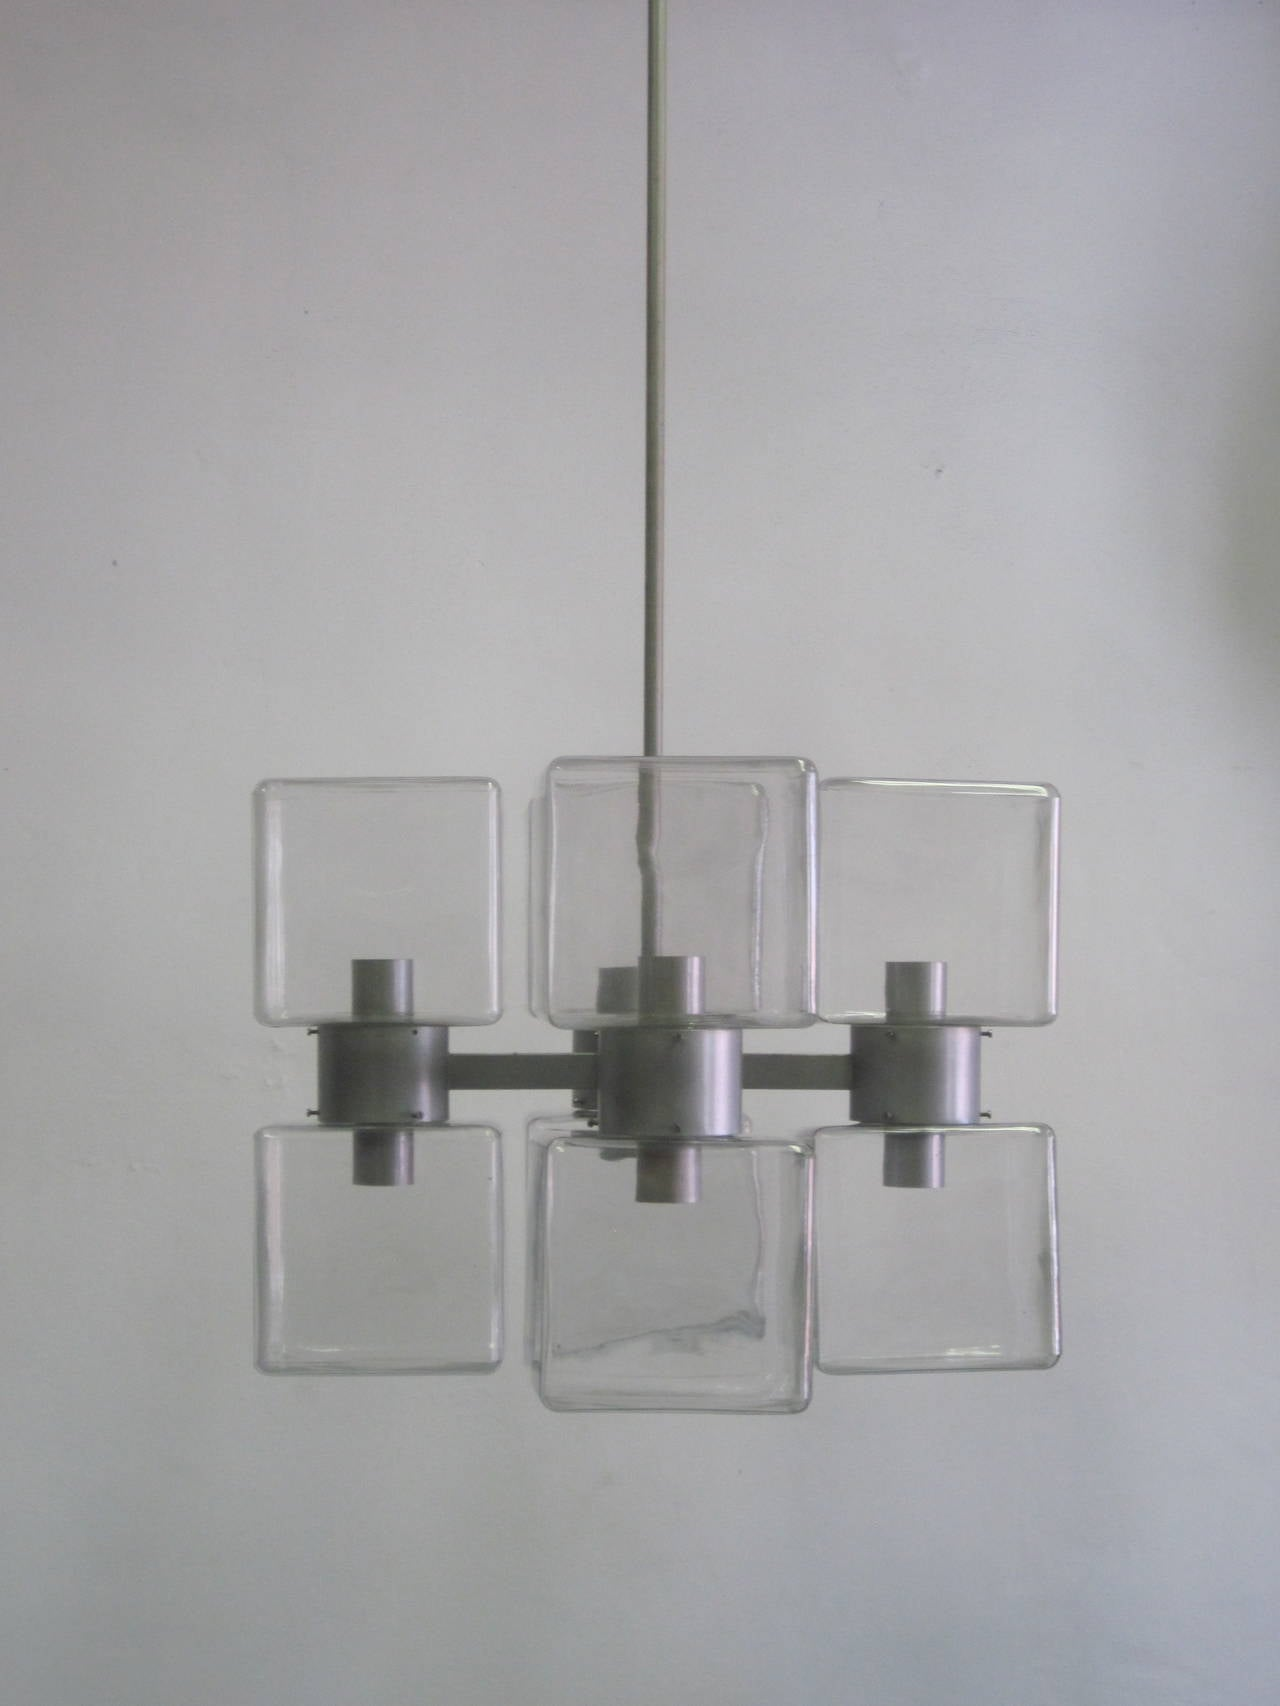 Elegant, sober and pure Italian Mid-Century Modern chandelier composed of eight mold blown clear Murano glass reflectors arranged in a cross pattern. The glass can oriented to form a square or angular pattern by adjusting the angle of the